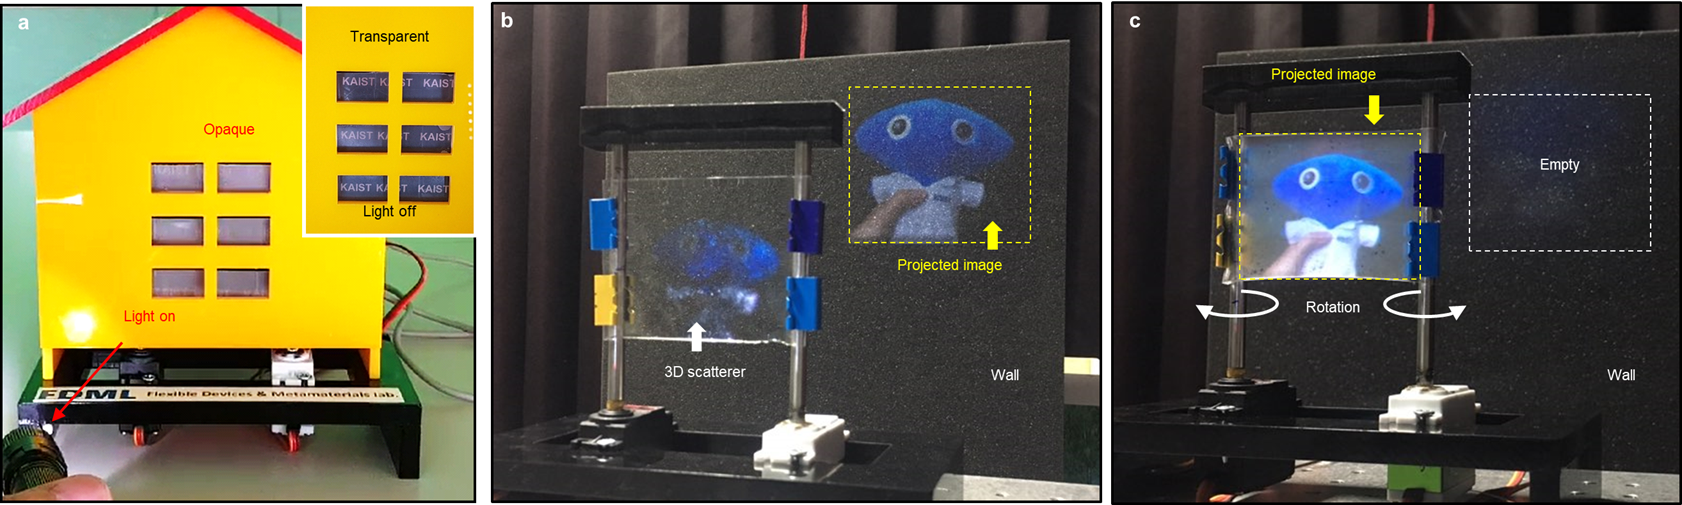 Figure 3. Demonstrations of the internet of things (IoT) applications: a self-regulating mechano-responsive smart window (MSW) device and a beam projection screen